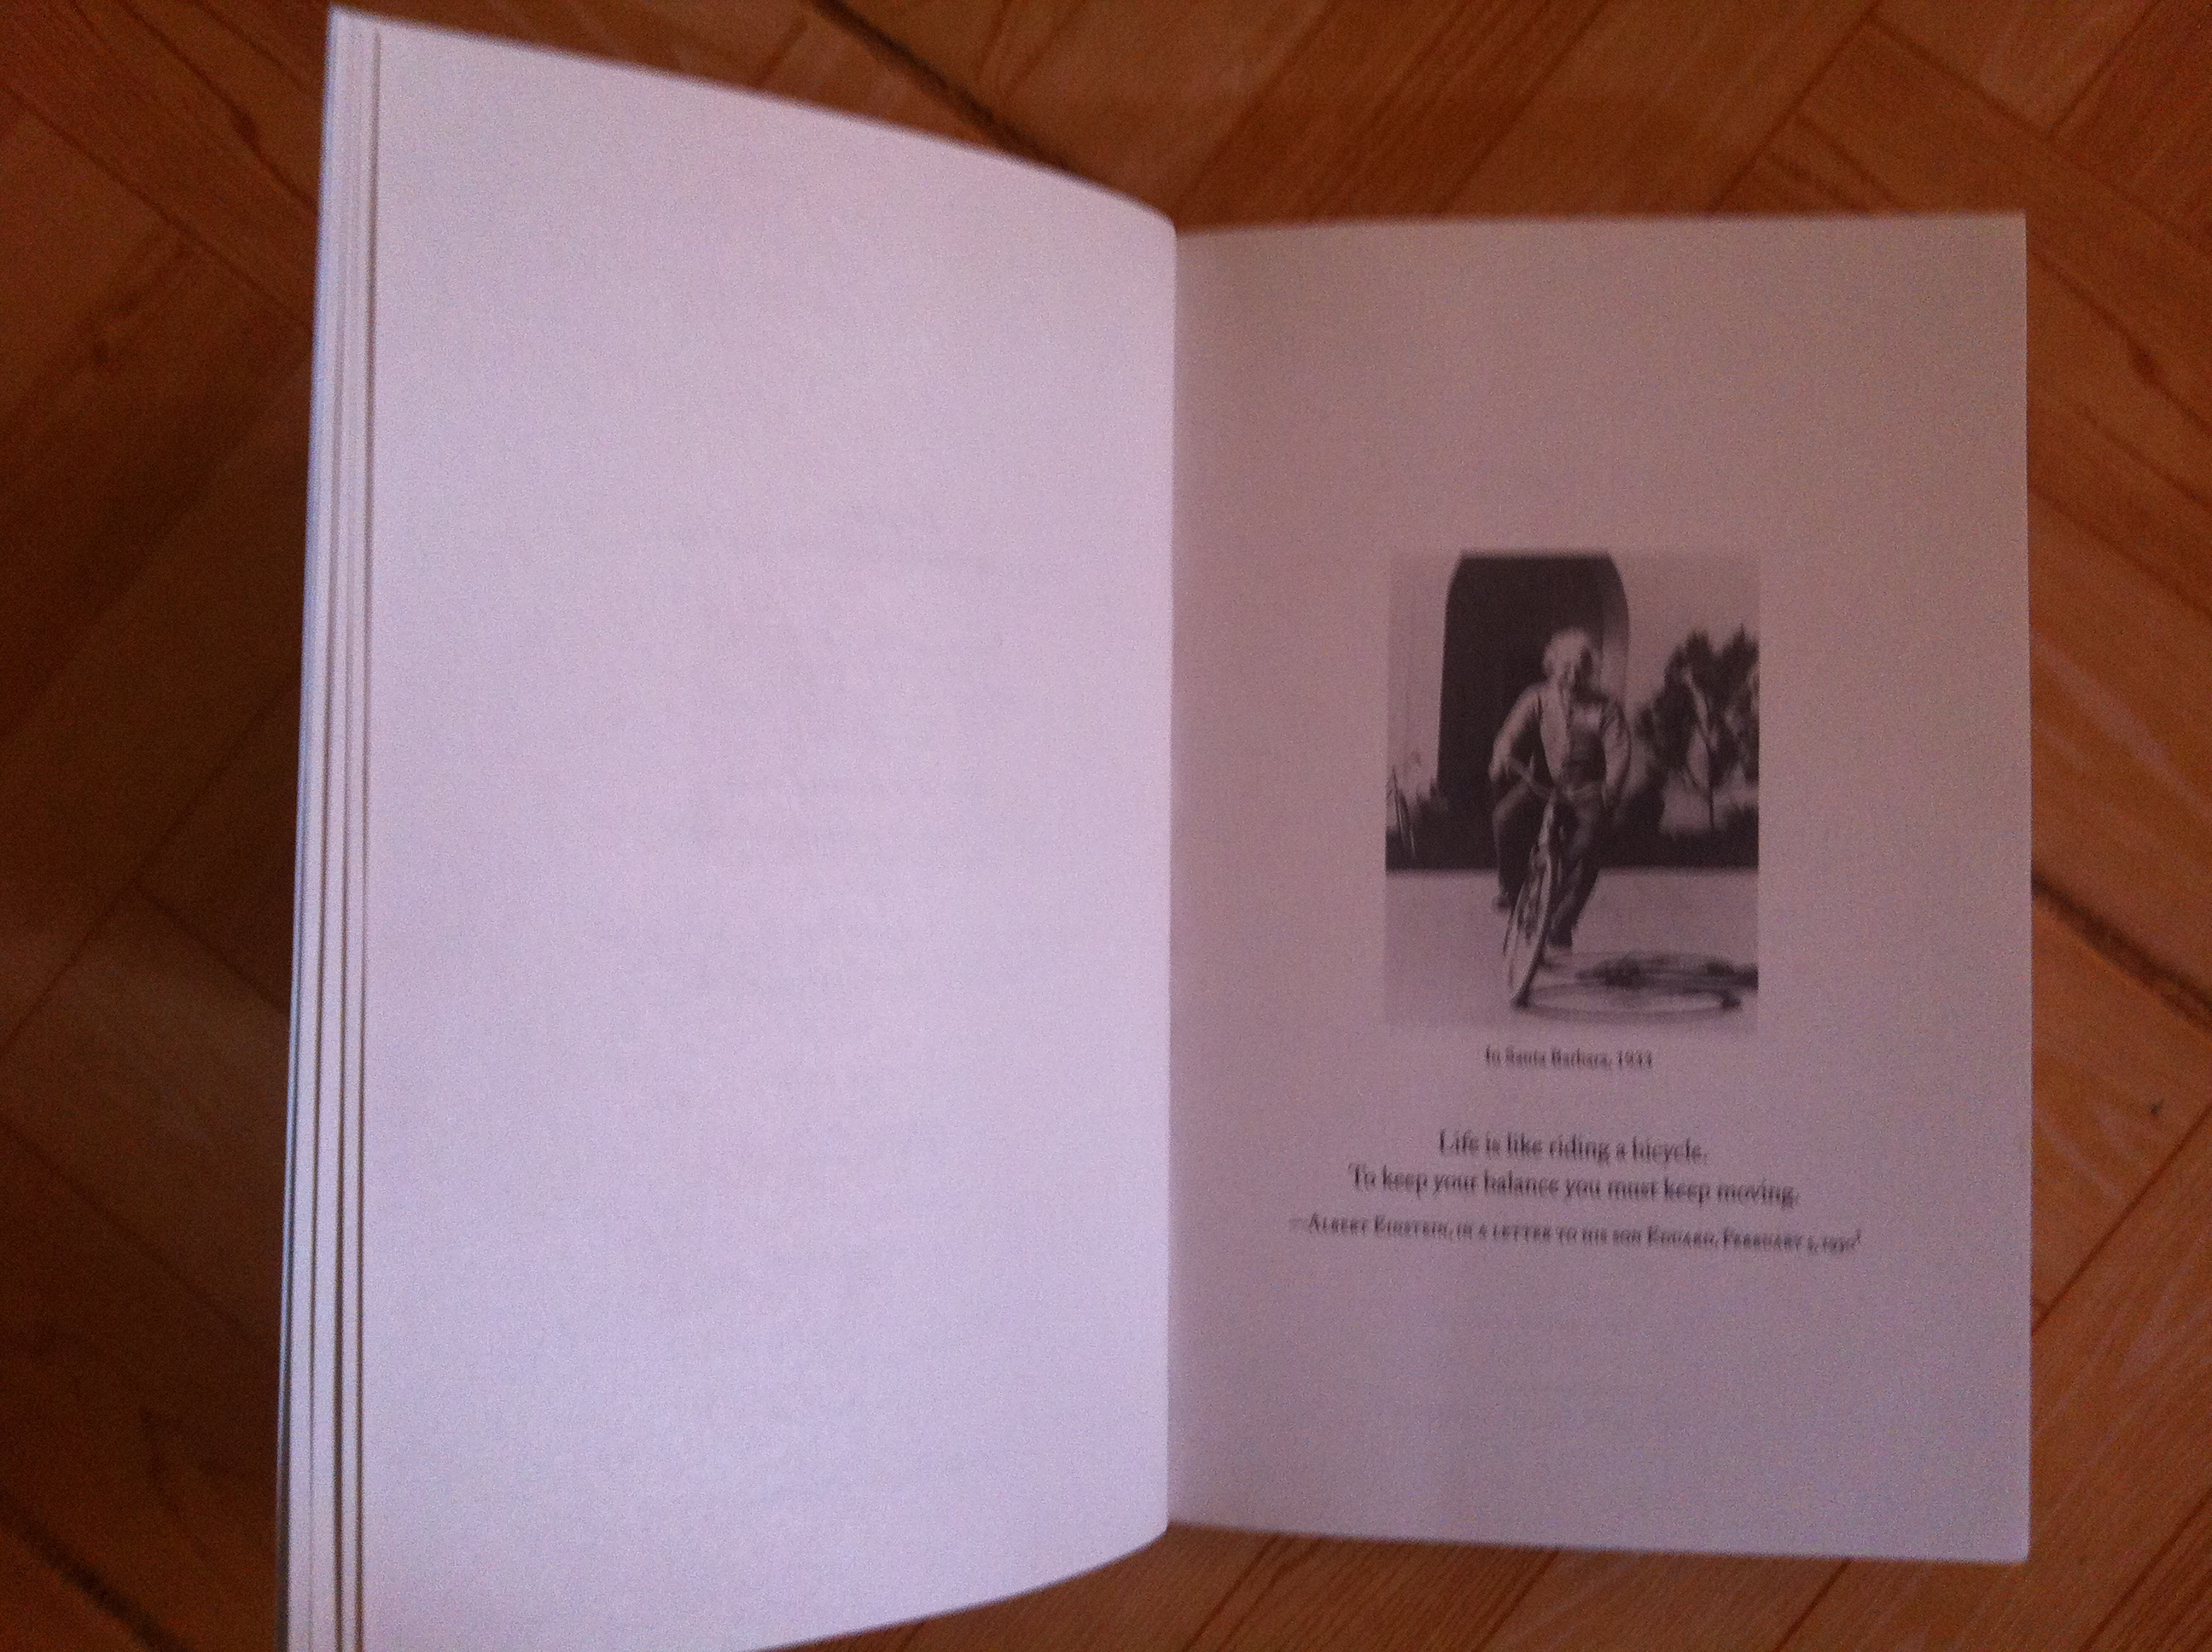 Einstein as a cyclist is one of the iconic images in the book: His Life and Universe by Isaacson Walter